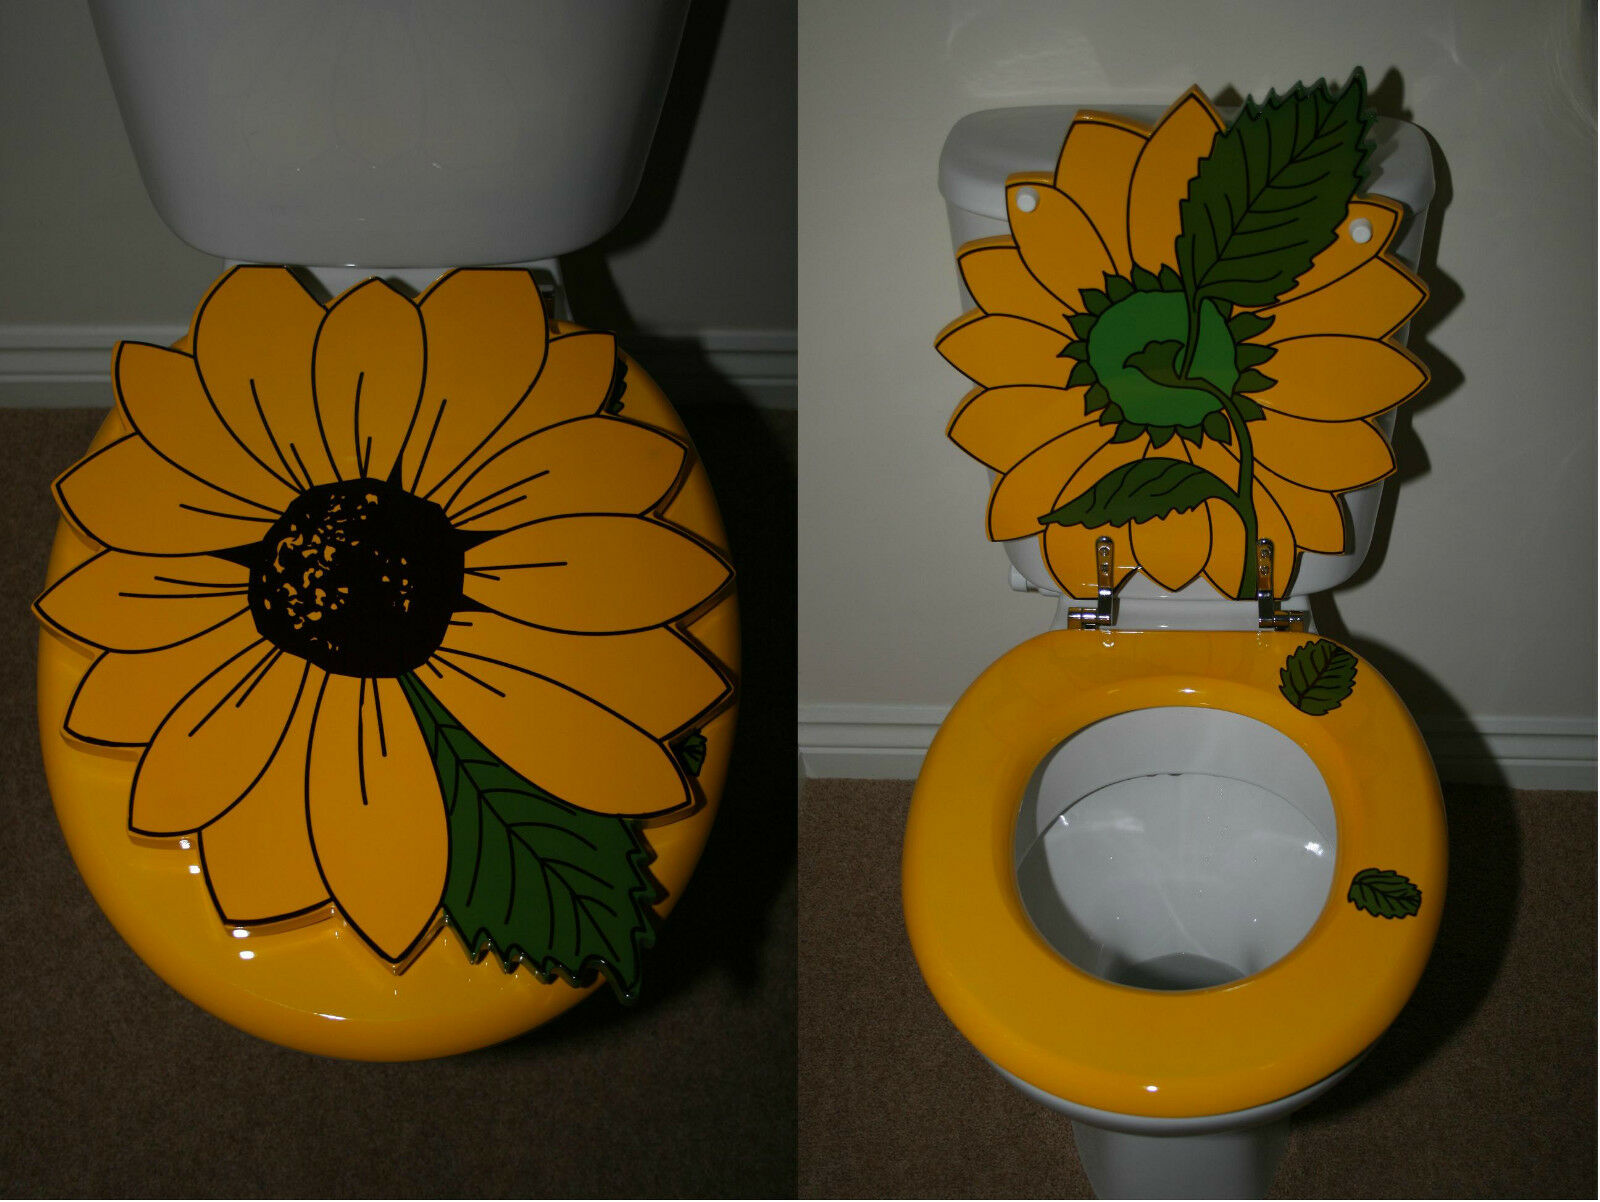 Designer Novelty Printed Toilet Seat Sunflower Design Ebay